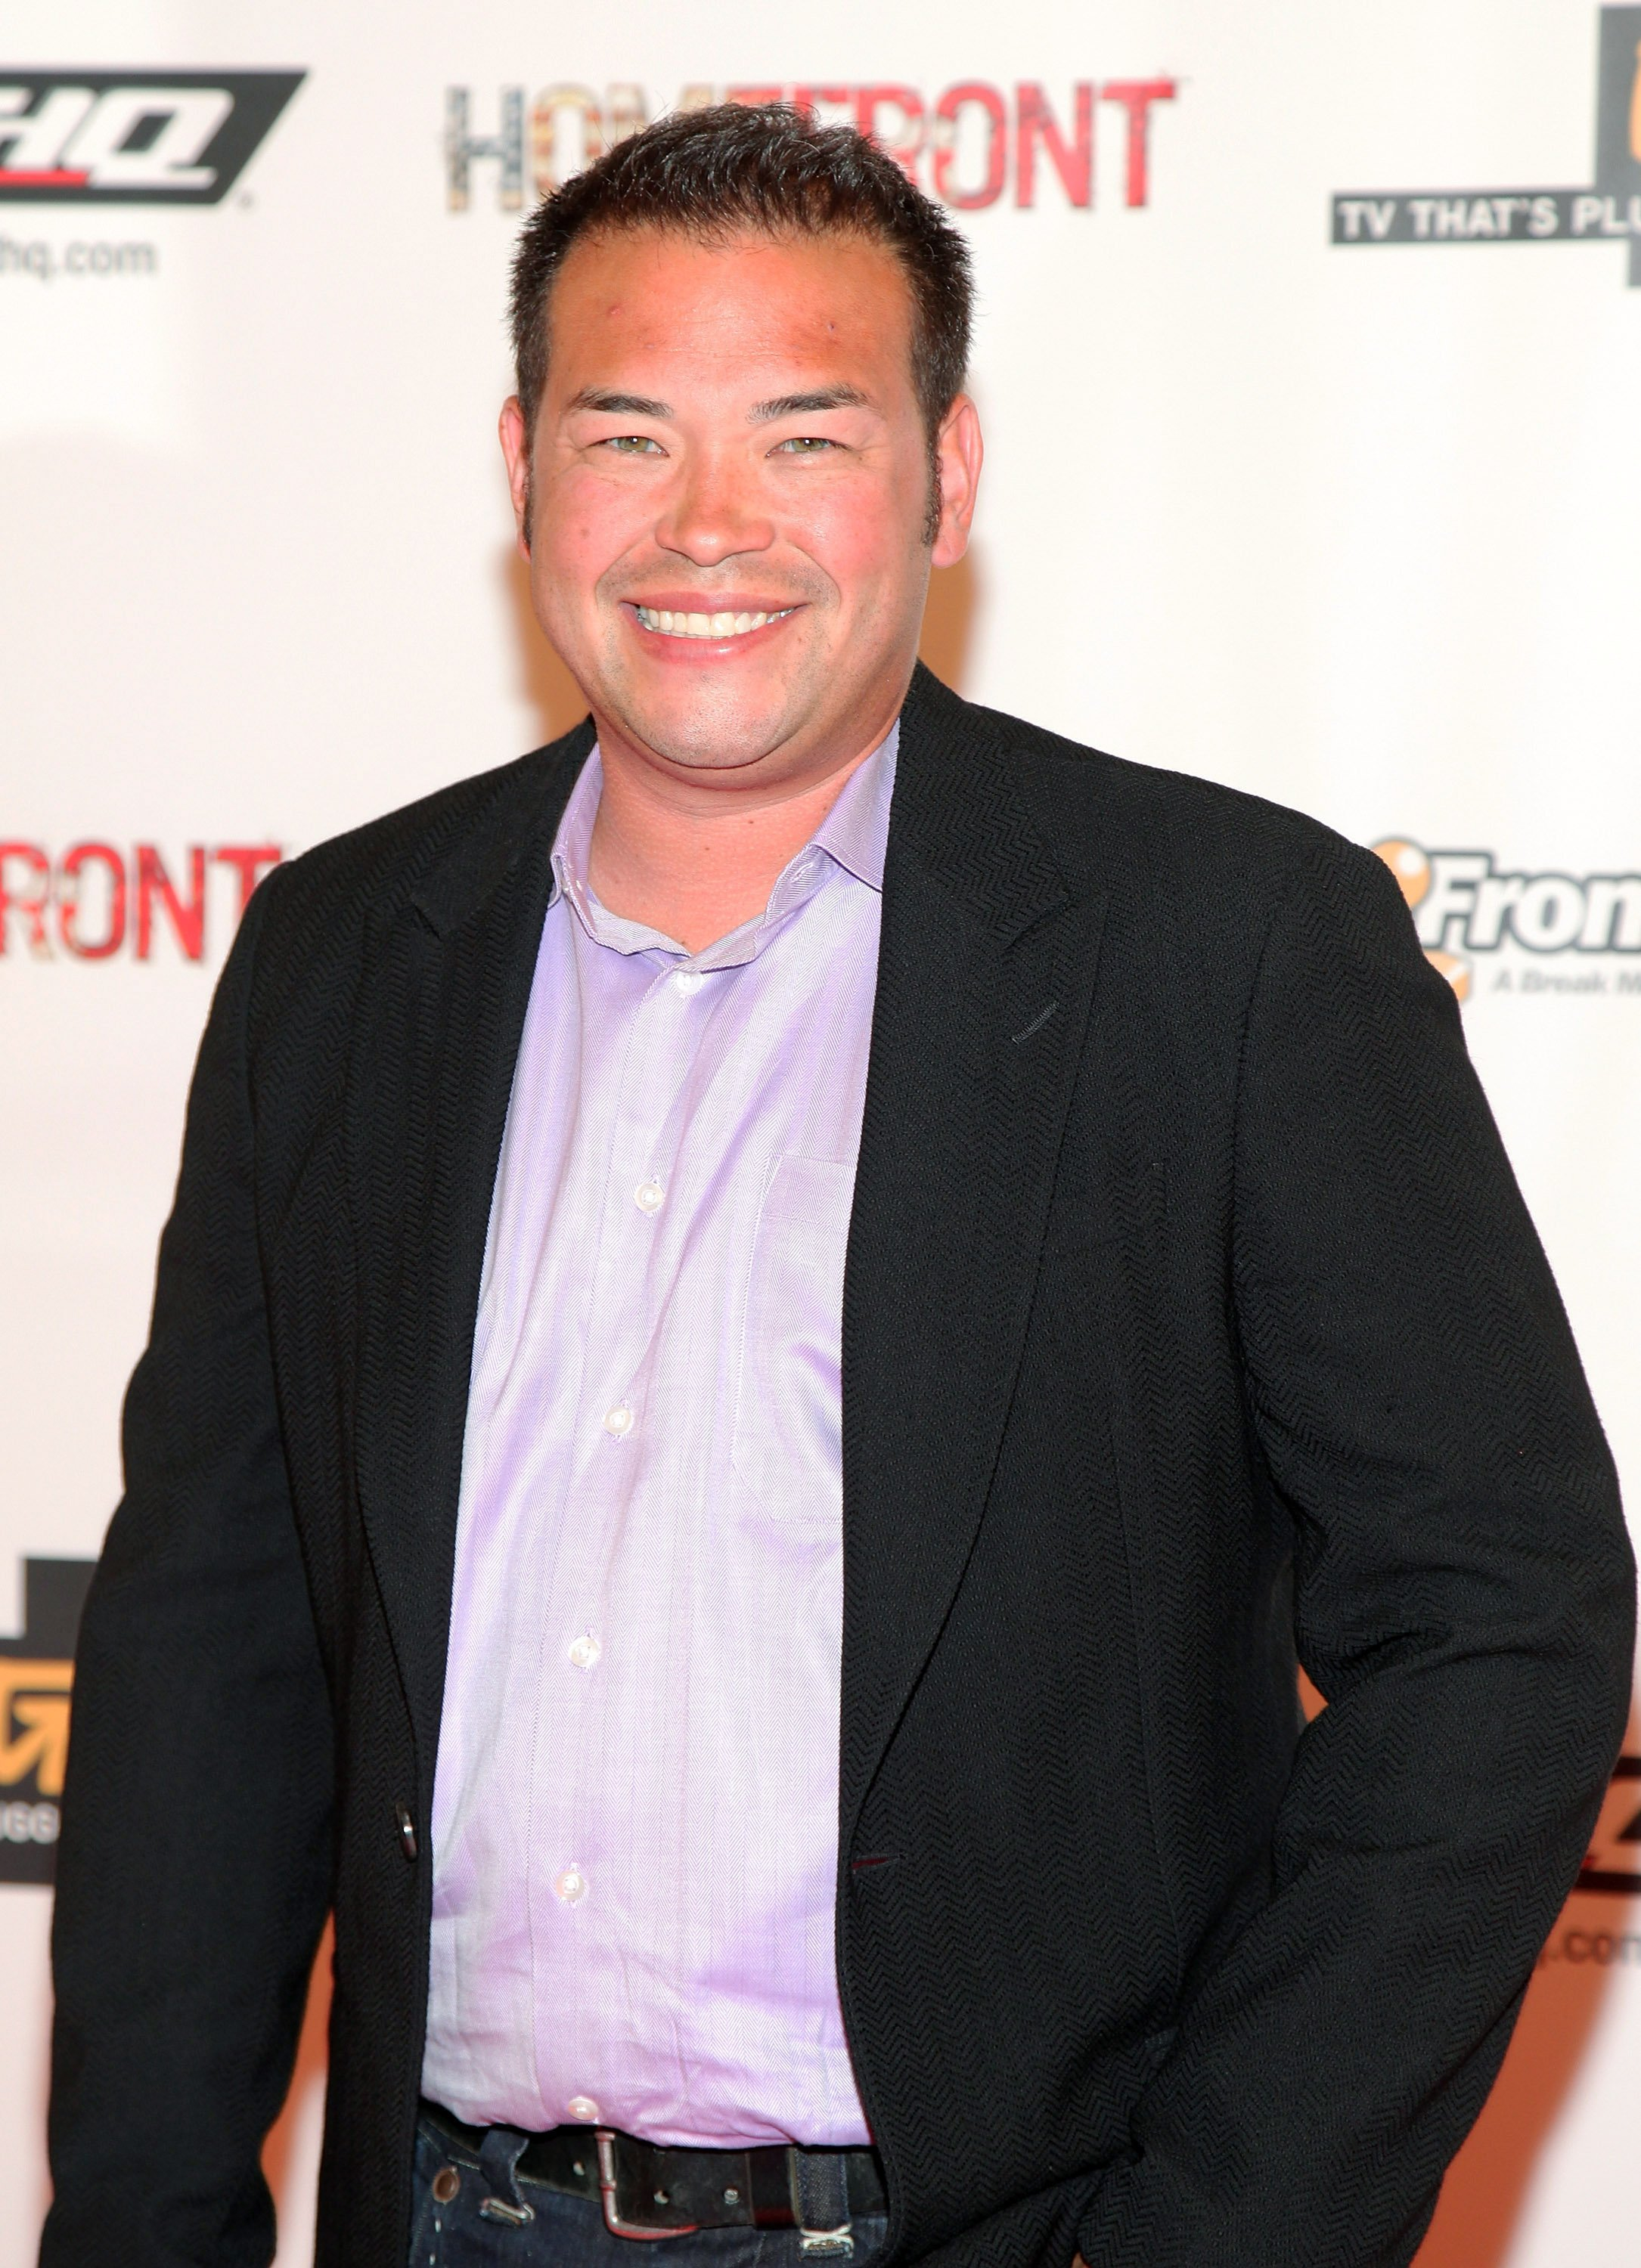 """TV reality star Jon Gosselin attends the 2010 THQ's E3 """"Take No Prisoners"""" event in Los Angeles, California. 